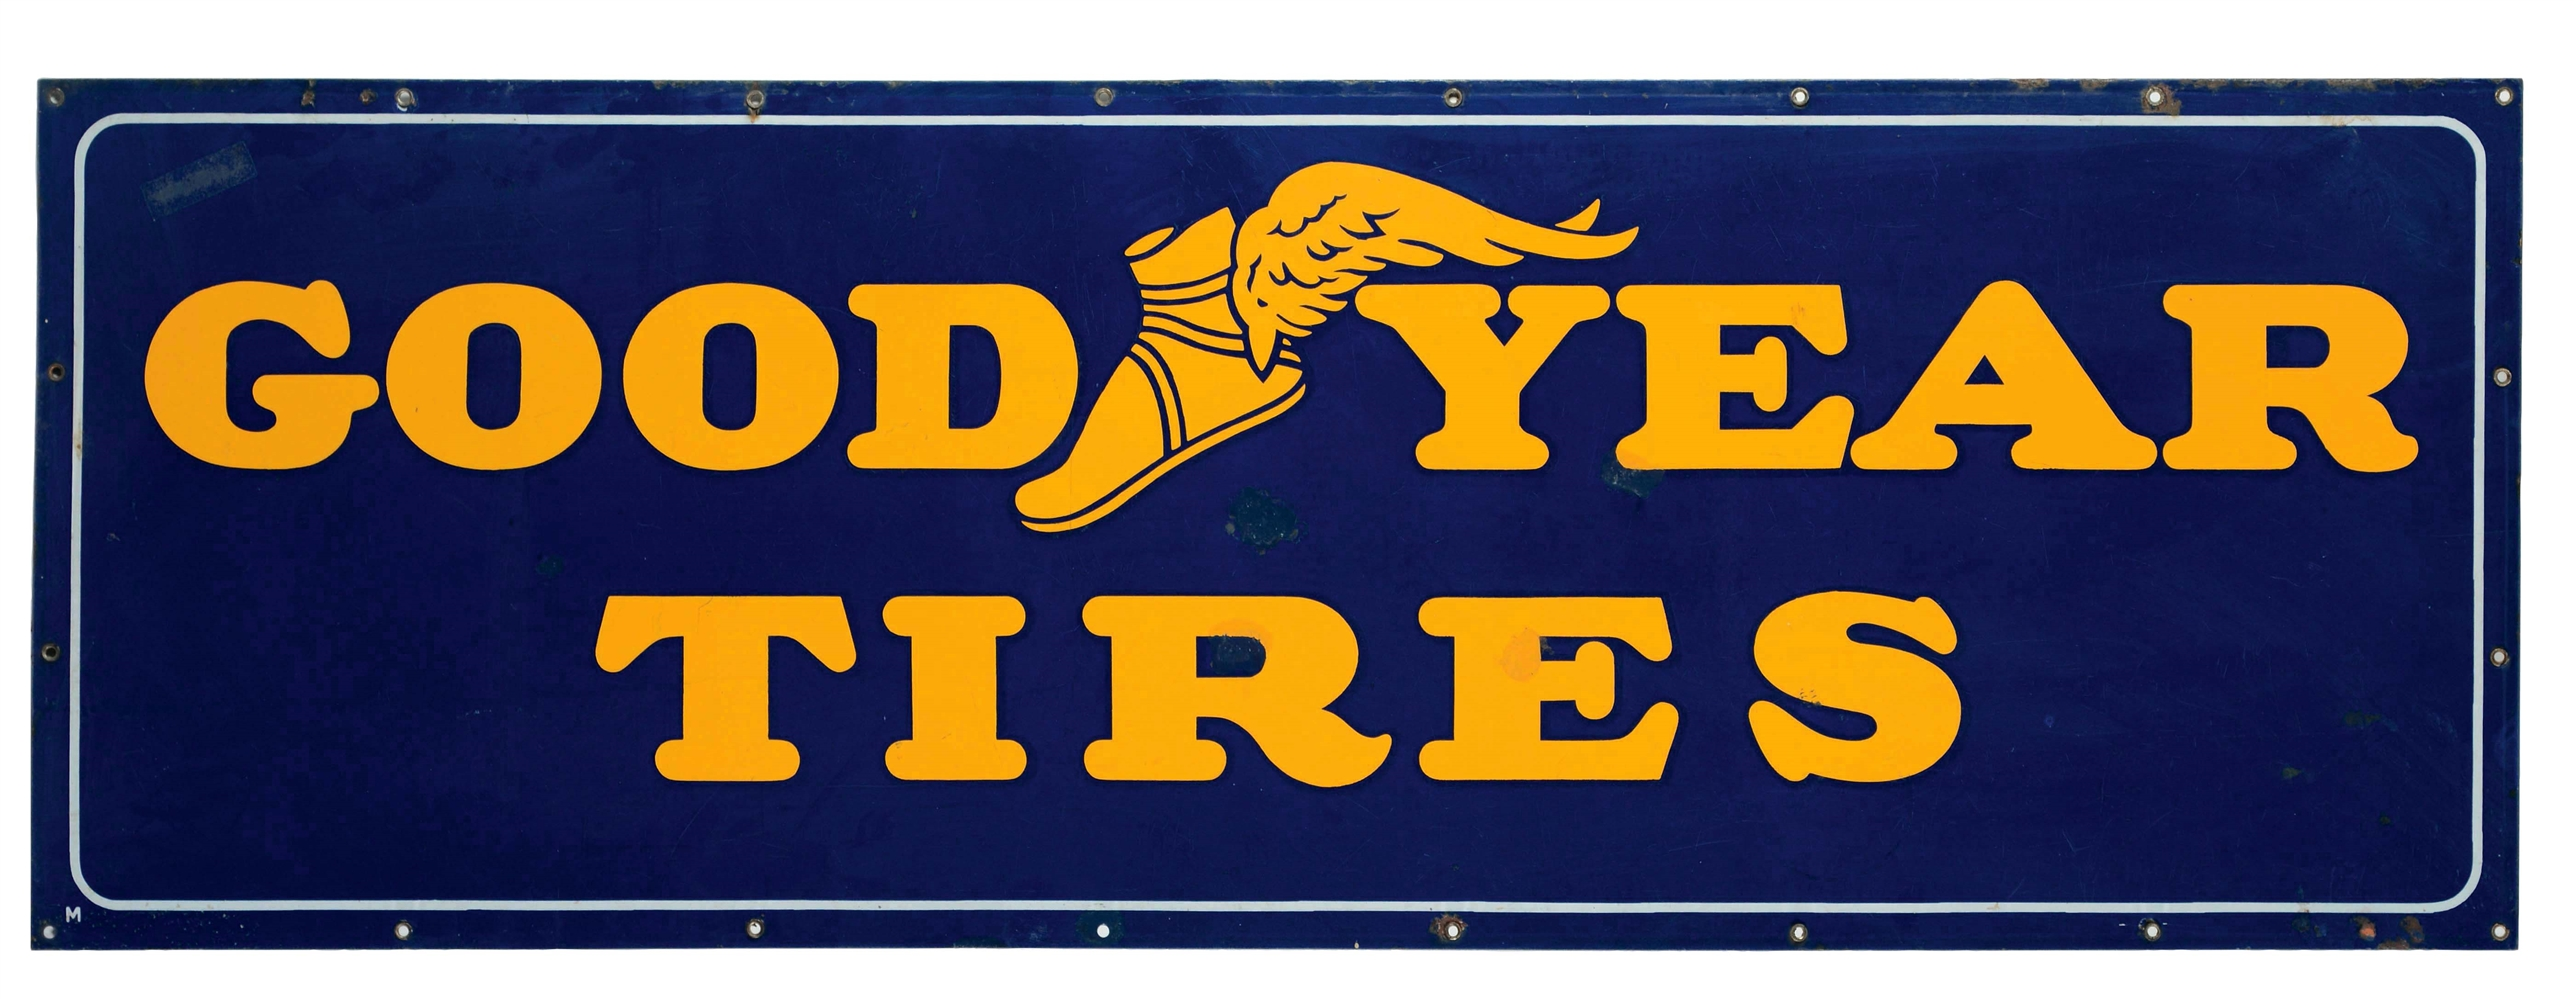 Goodyear Tires Porcelain Service Station Sign.